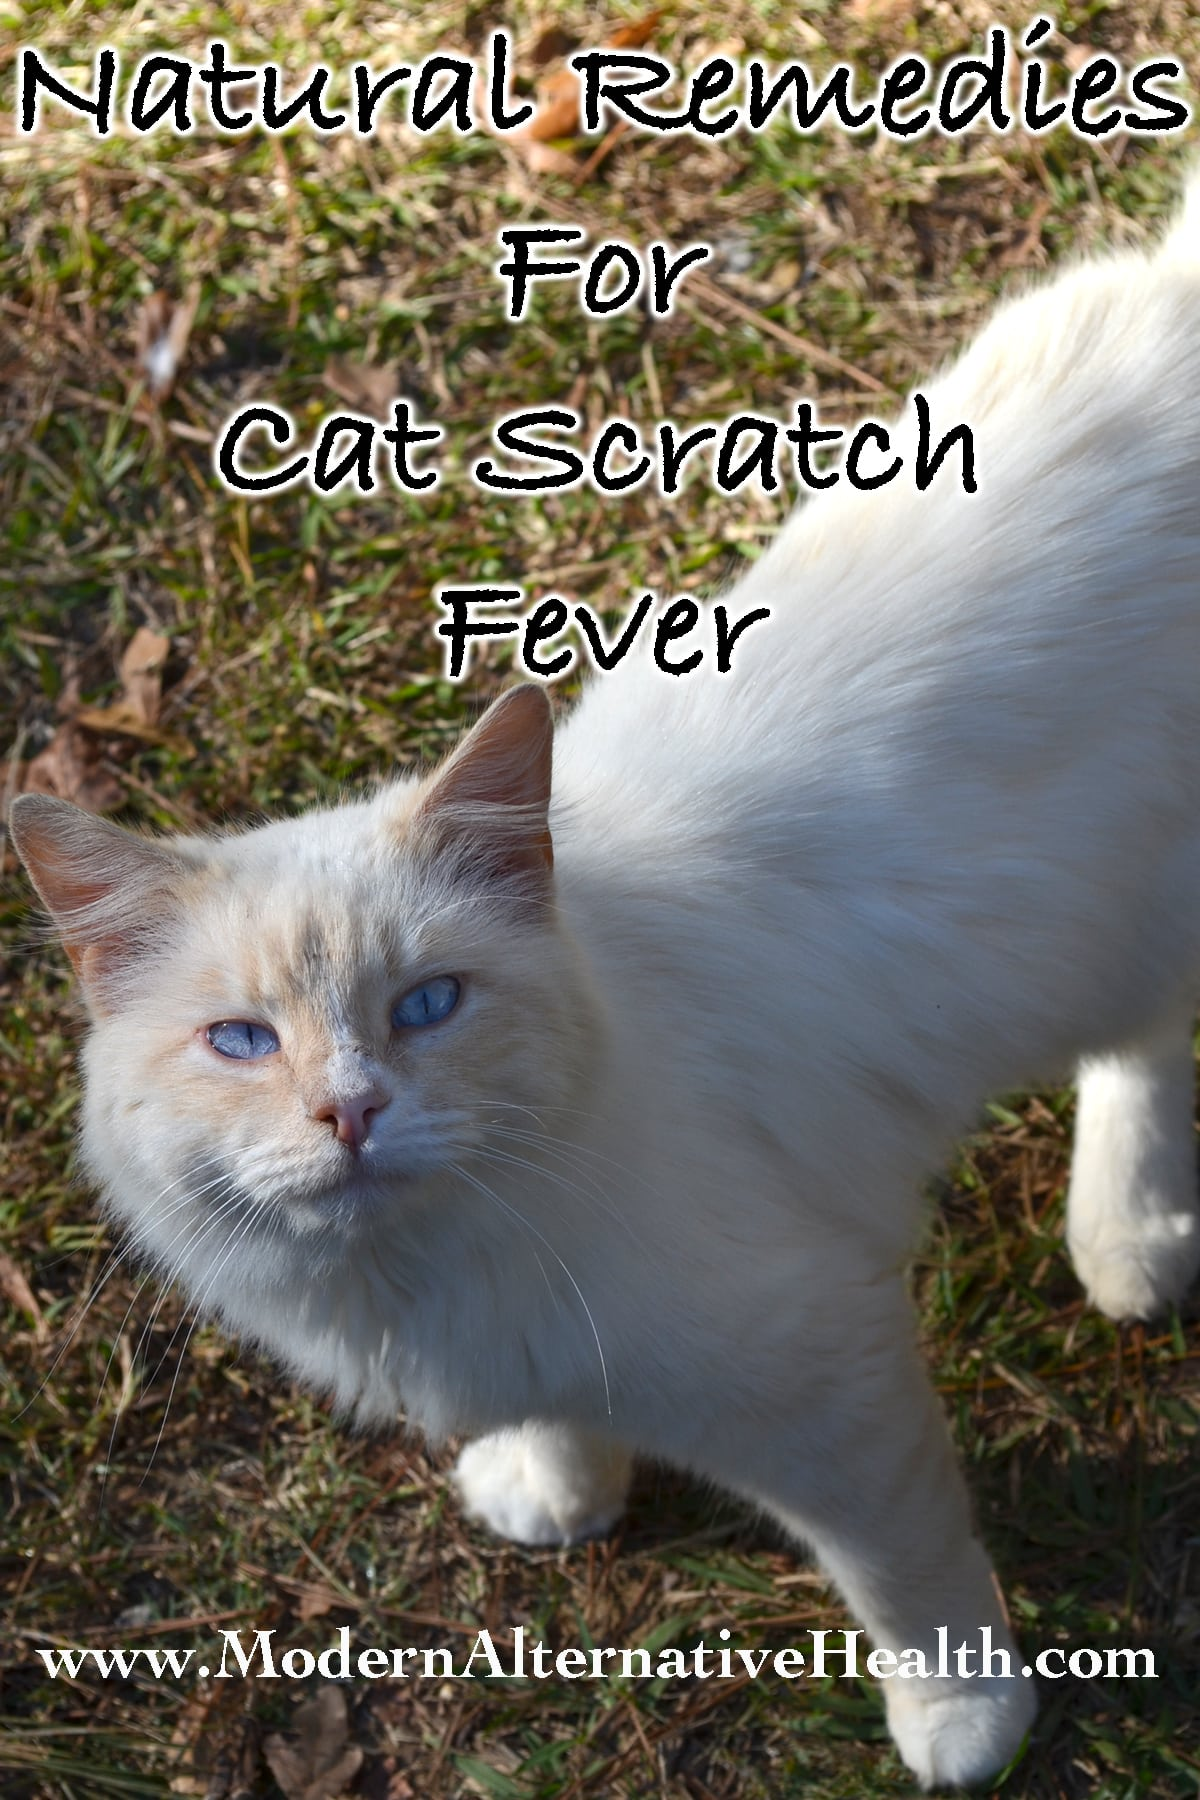 Natural Remedies for Cat Scratch Fever